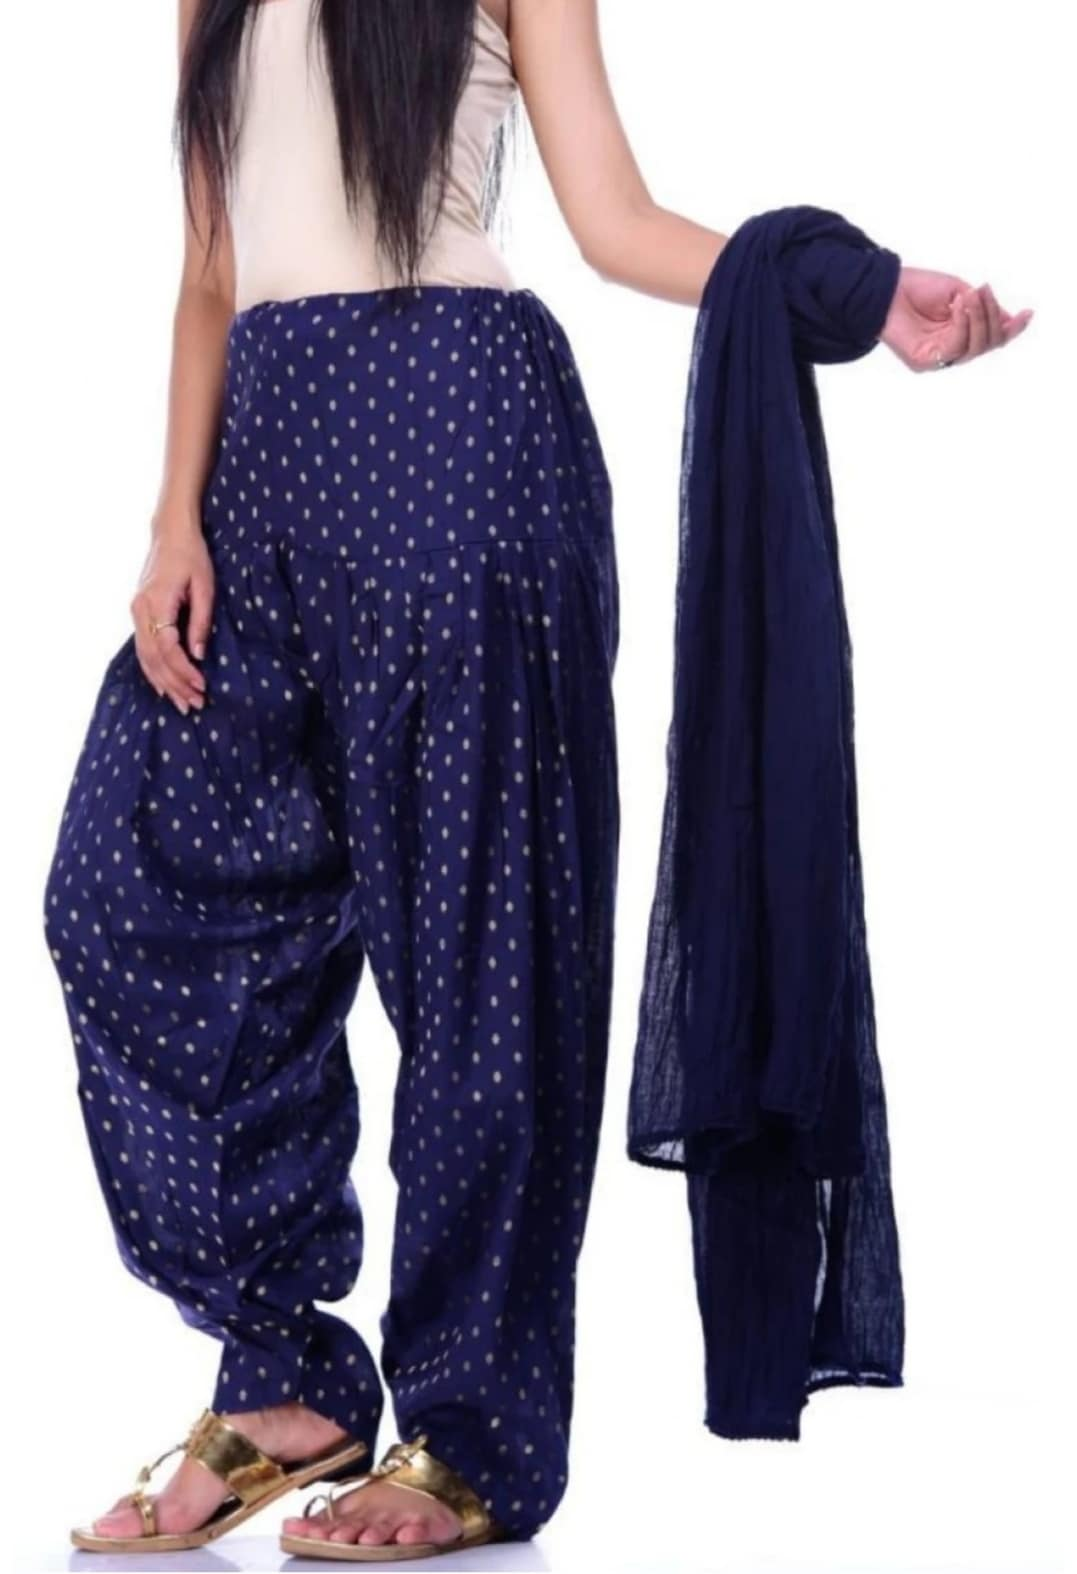 Samridhi Collections Combo Of Women's Cotton Patiala And Dupptta Golden Booti Work (Nevy Blue)